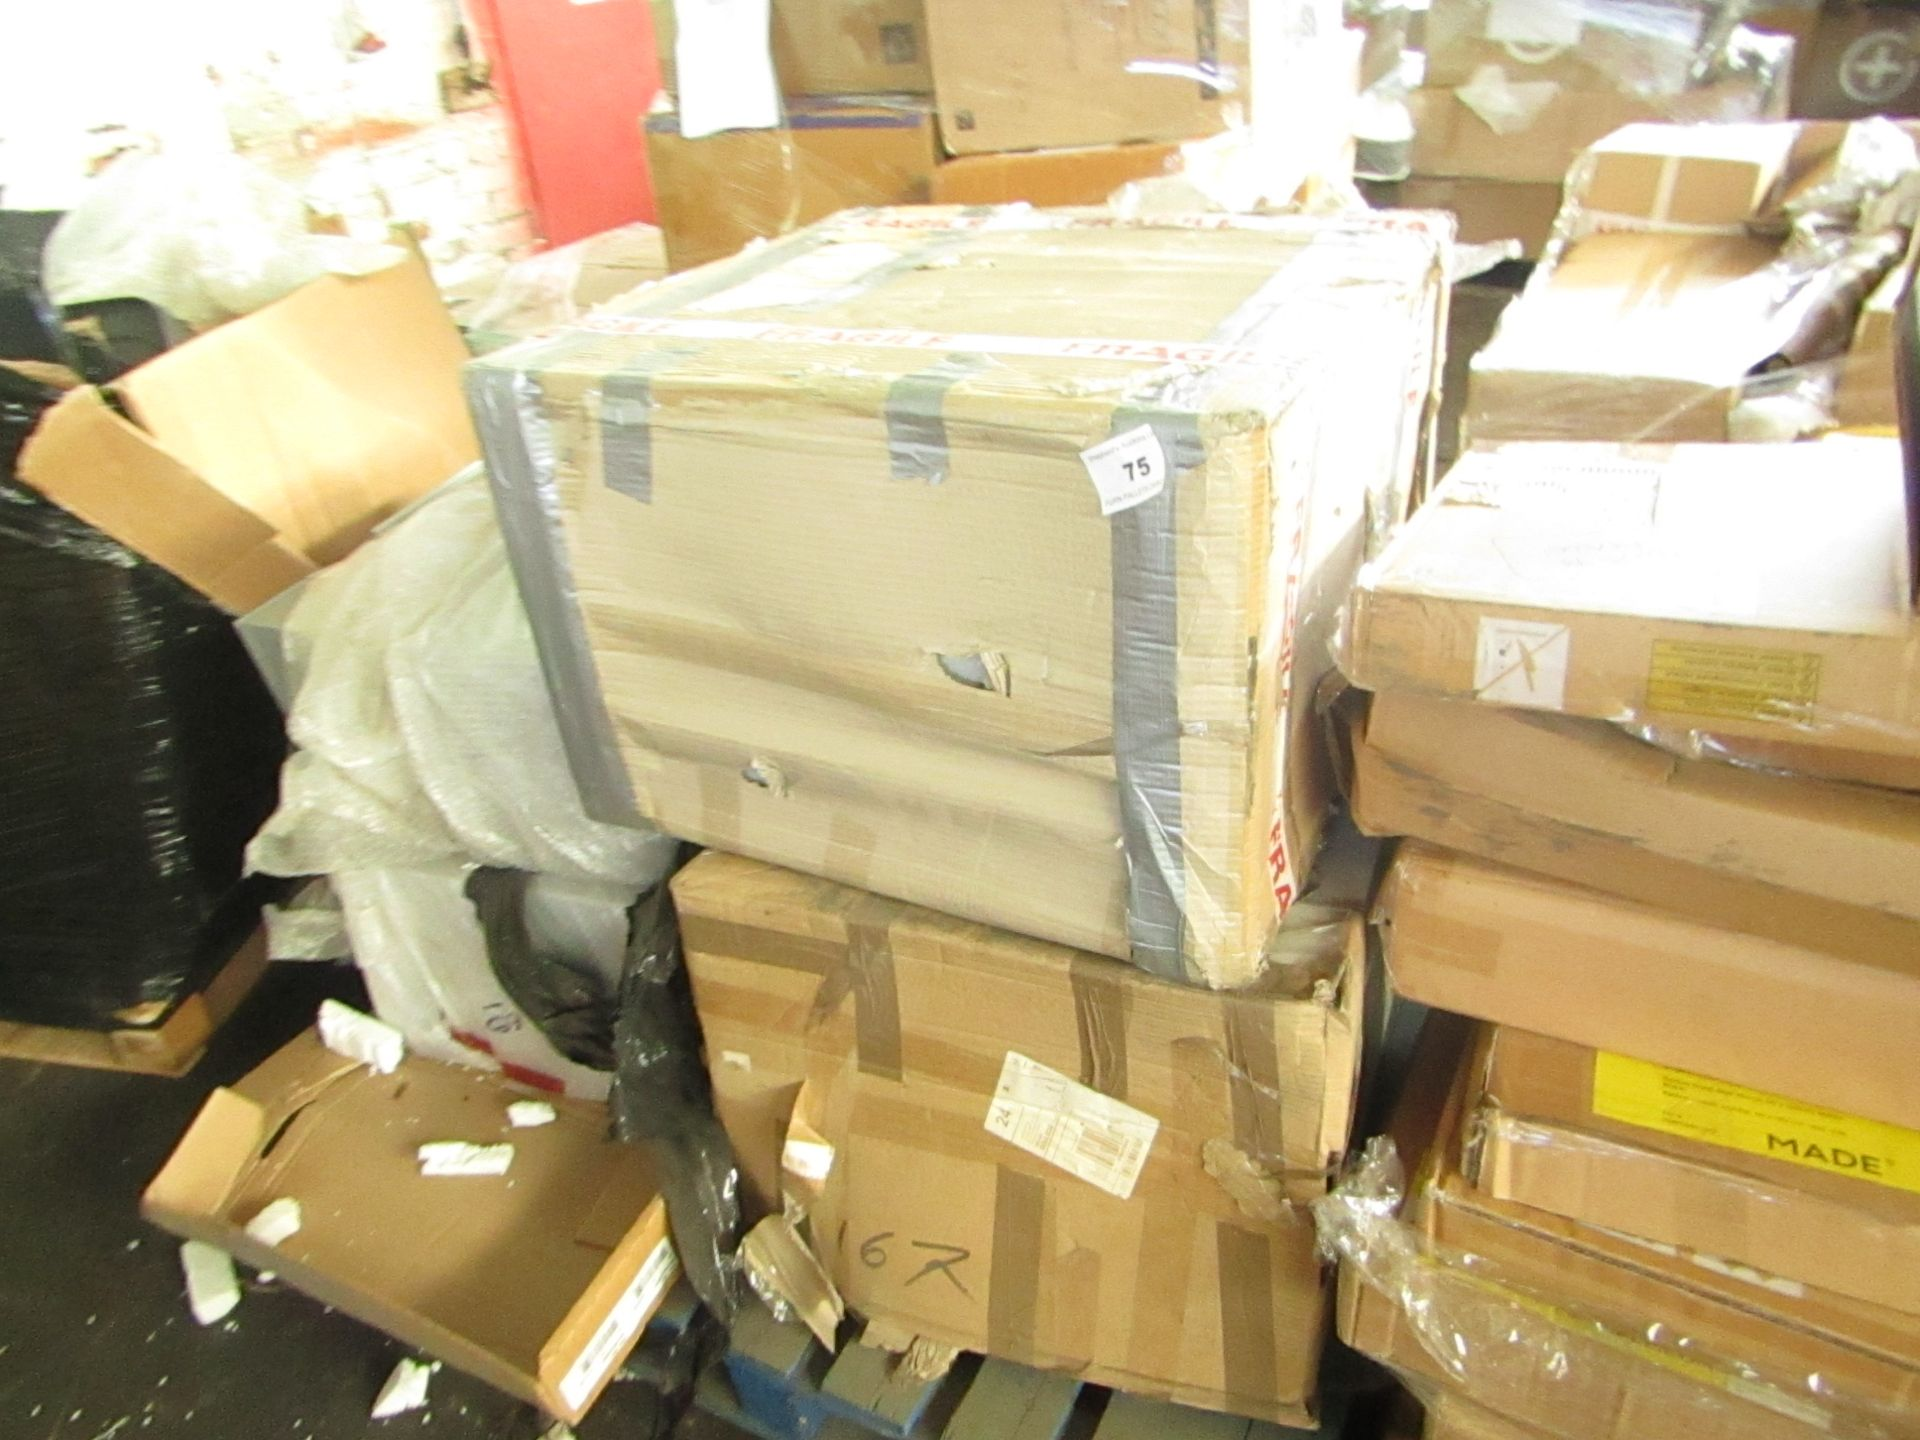 PALLET CONTAINING 4 FILING CABINETS. UNCHECKED